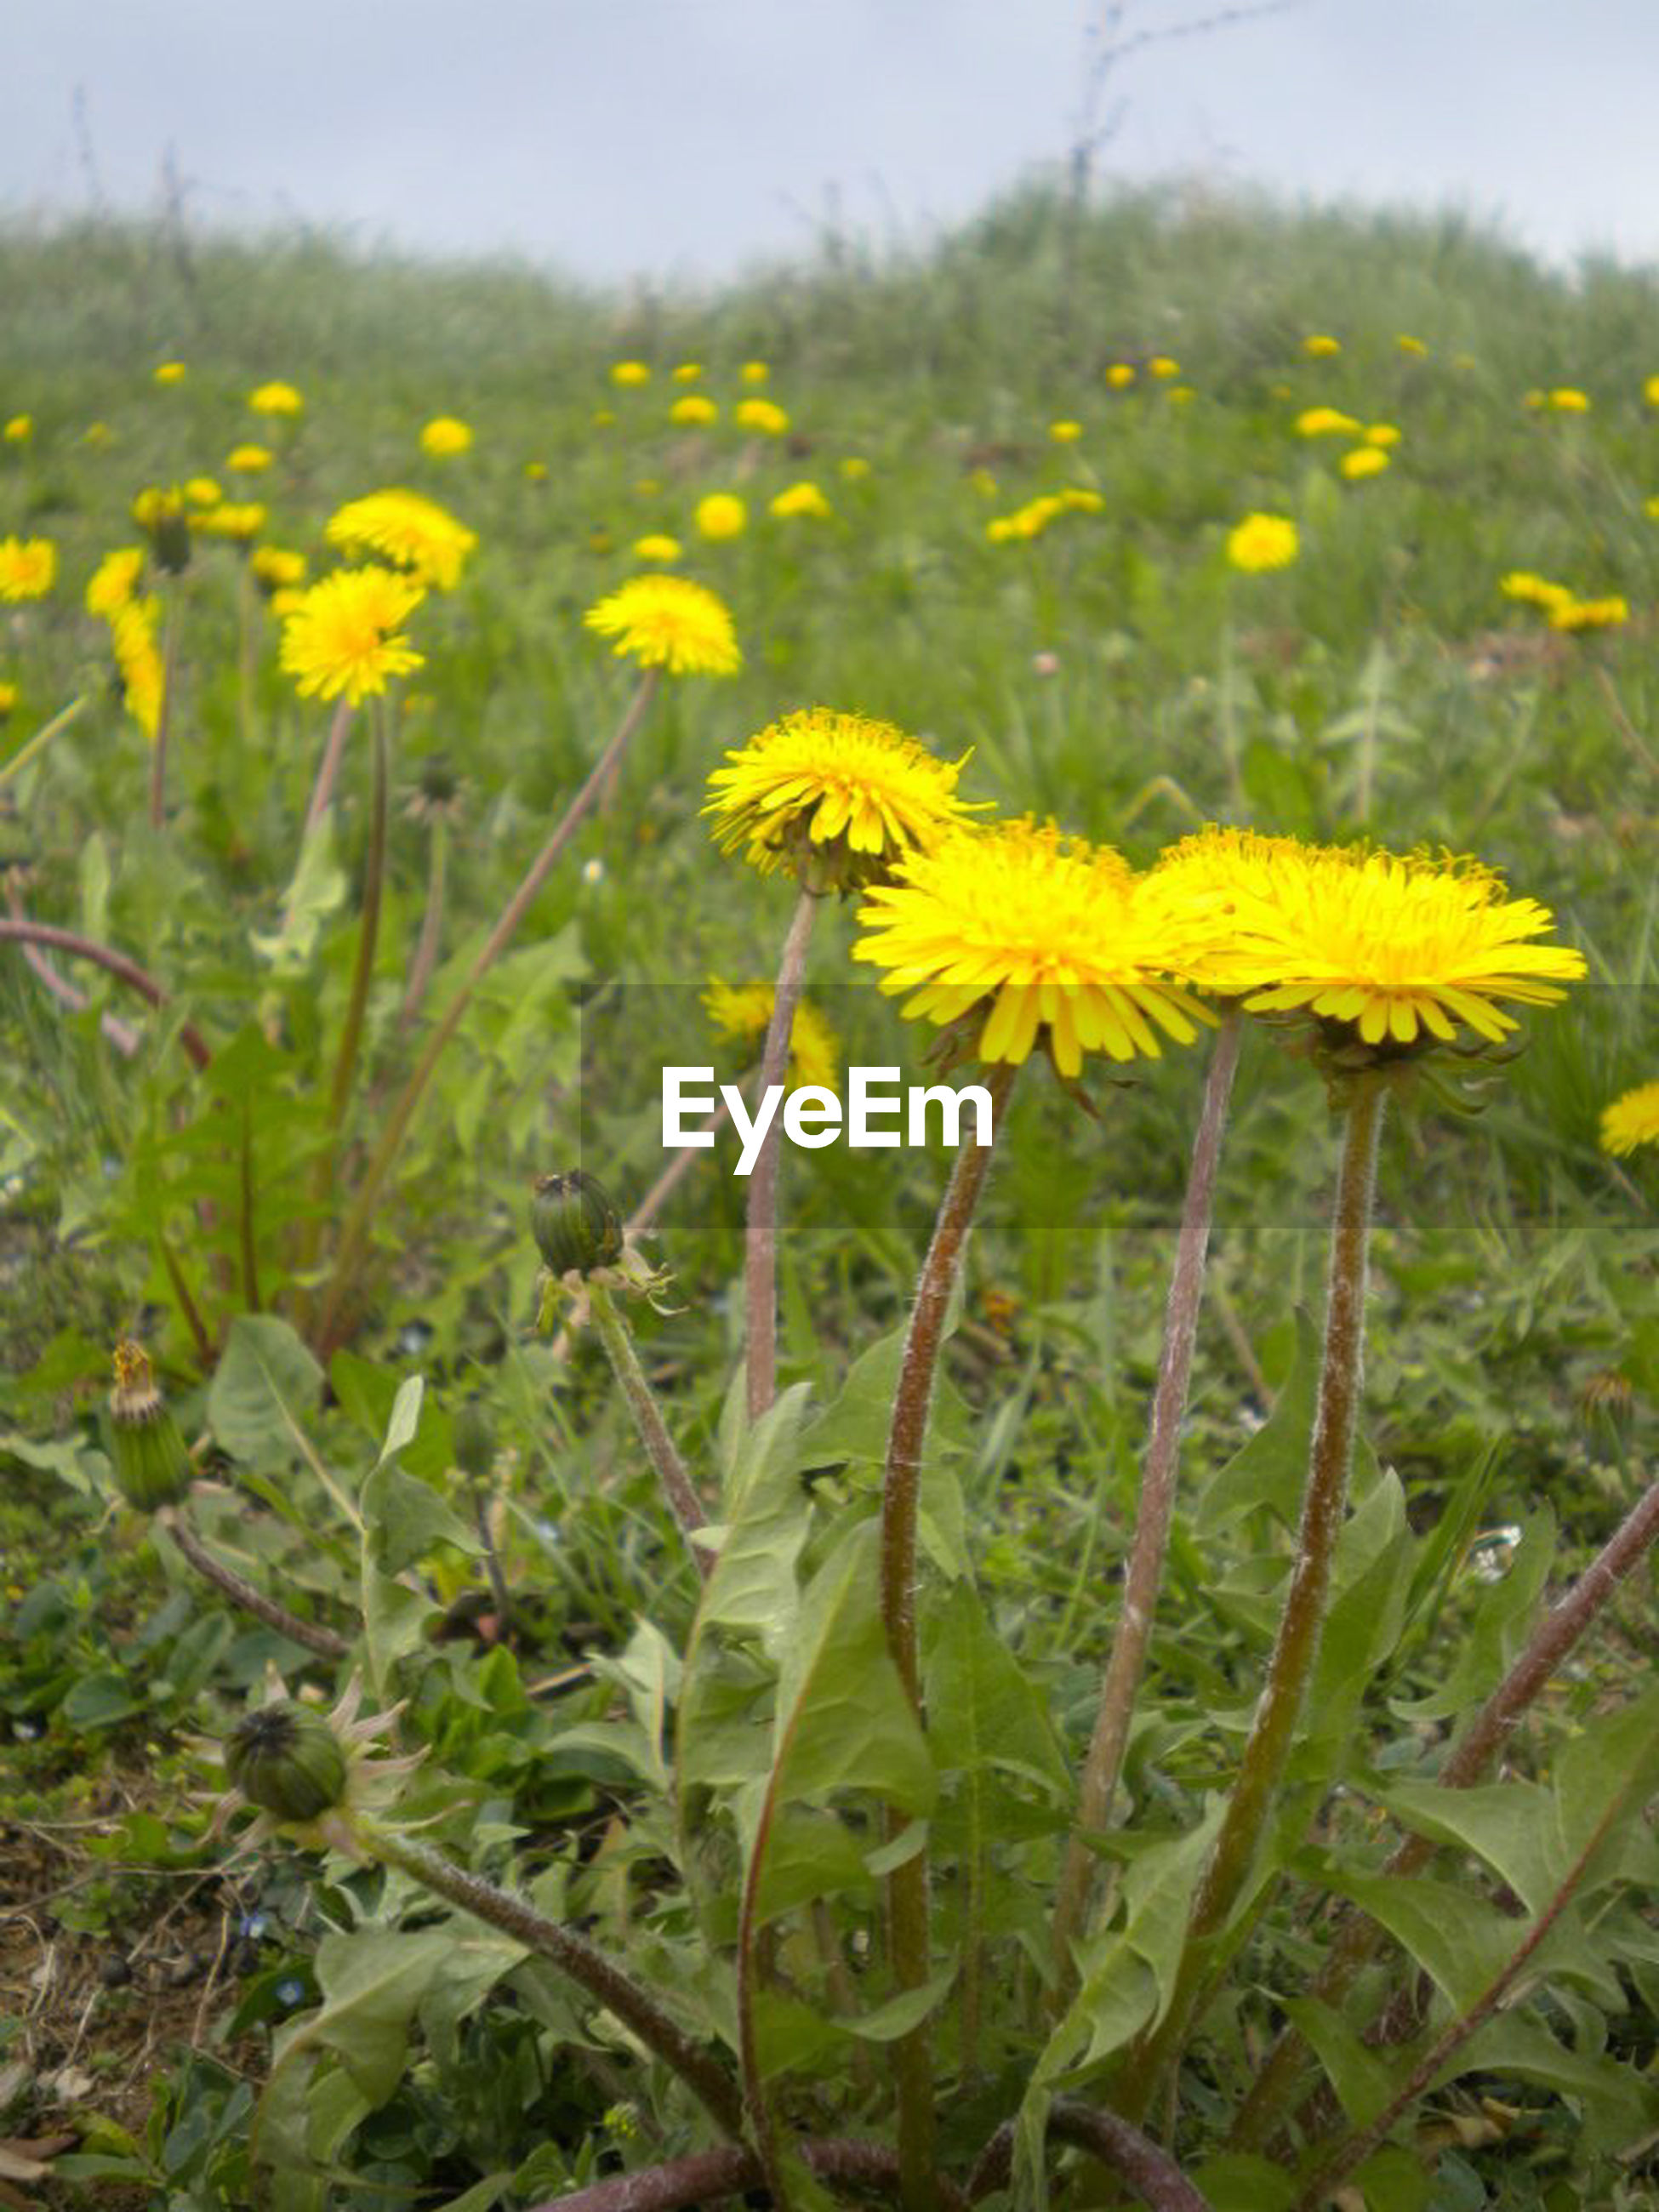 flower, yellow, freshness, growth, fragility, field, beauty in nature, plant, petal, nature, blooming, flower head, stem, focus on foreground, in bloom, close-up, wildflower, tranquility, blossom, day